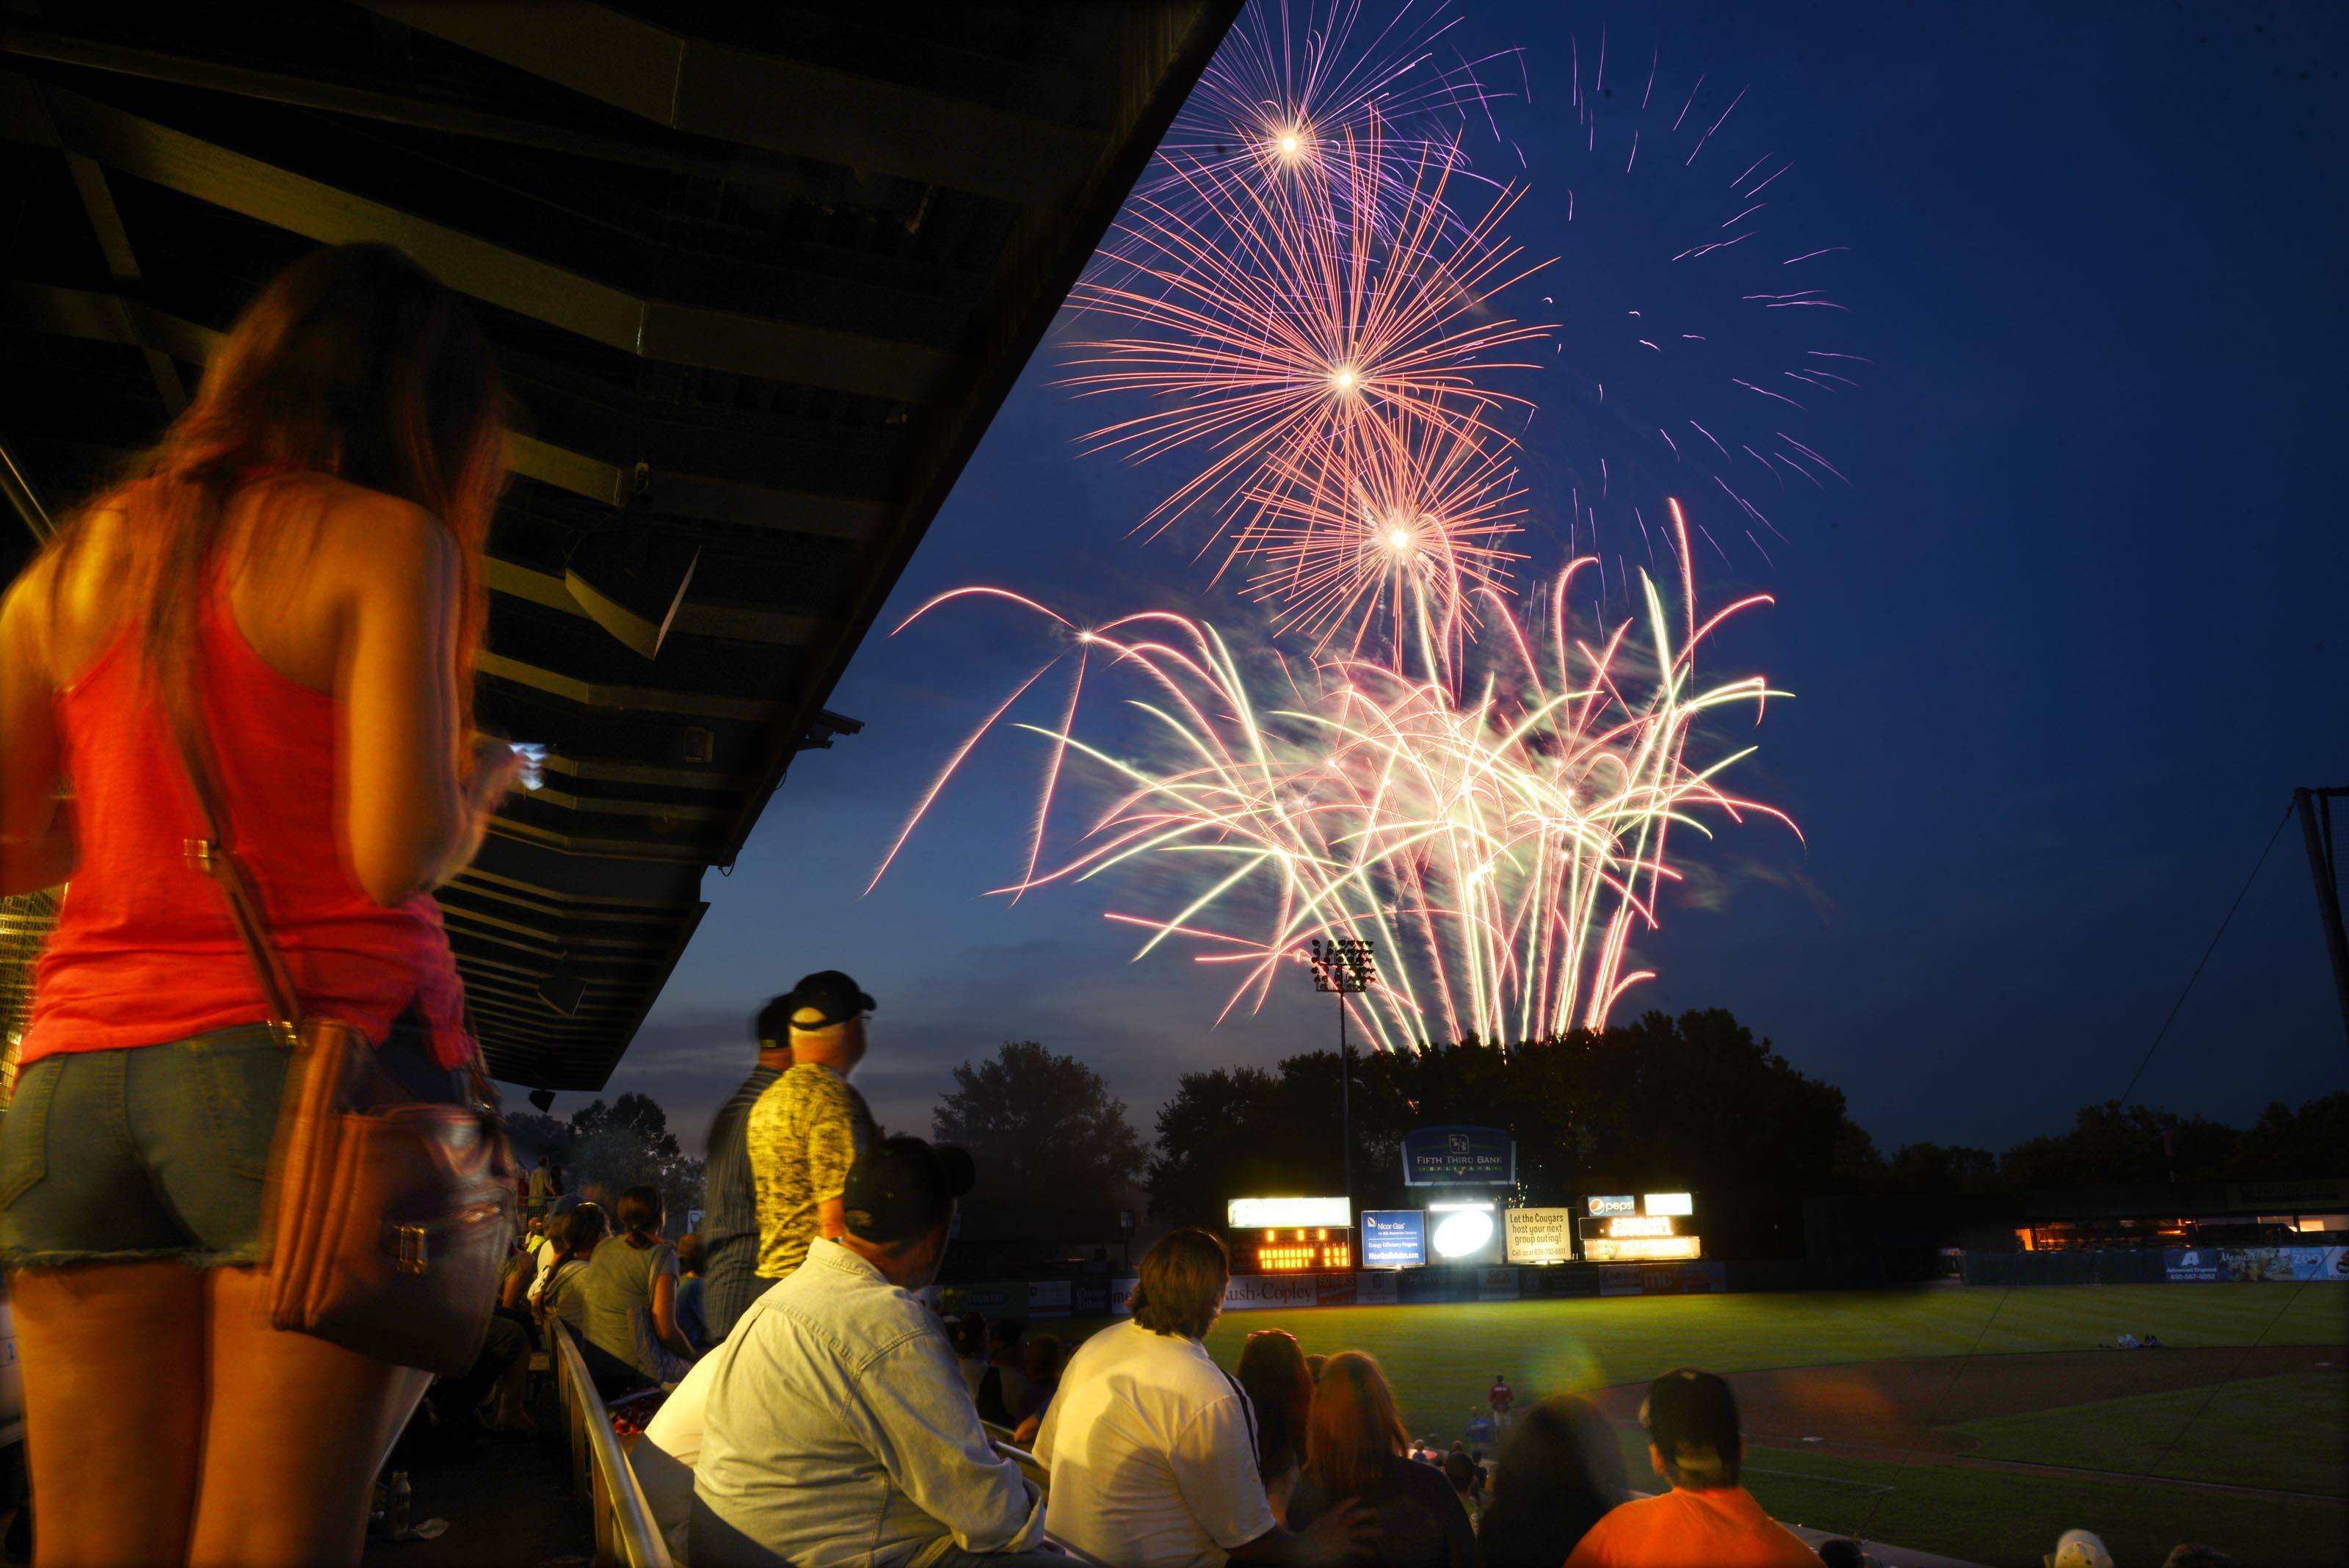 Fireworks light up the sky over Fifth Third Ballpark after the Kane County Cougars baseball game Wednesday night in Geneva.